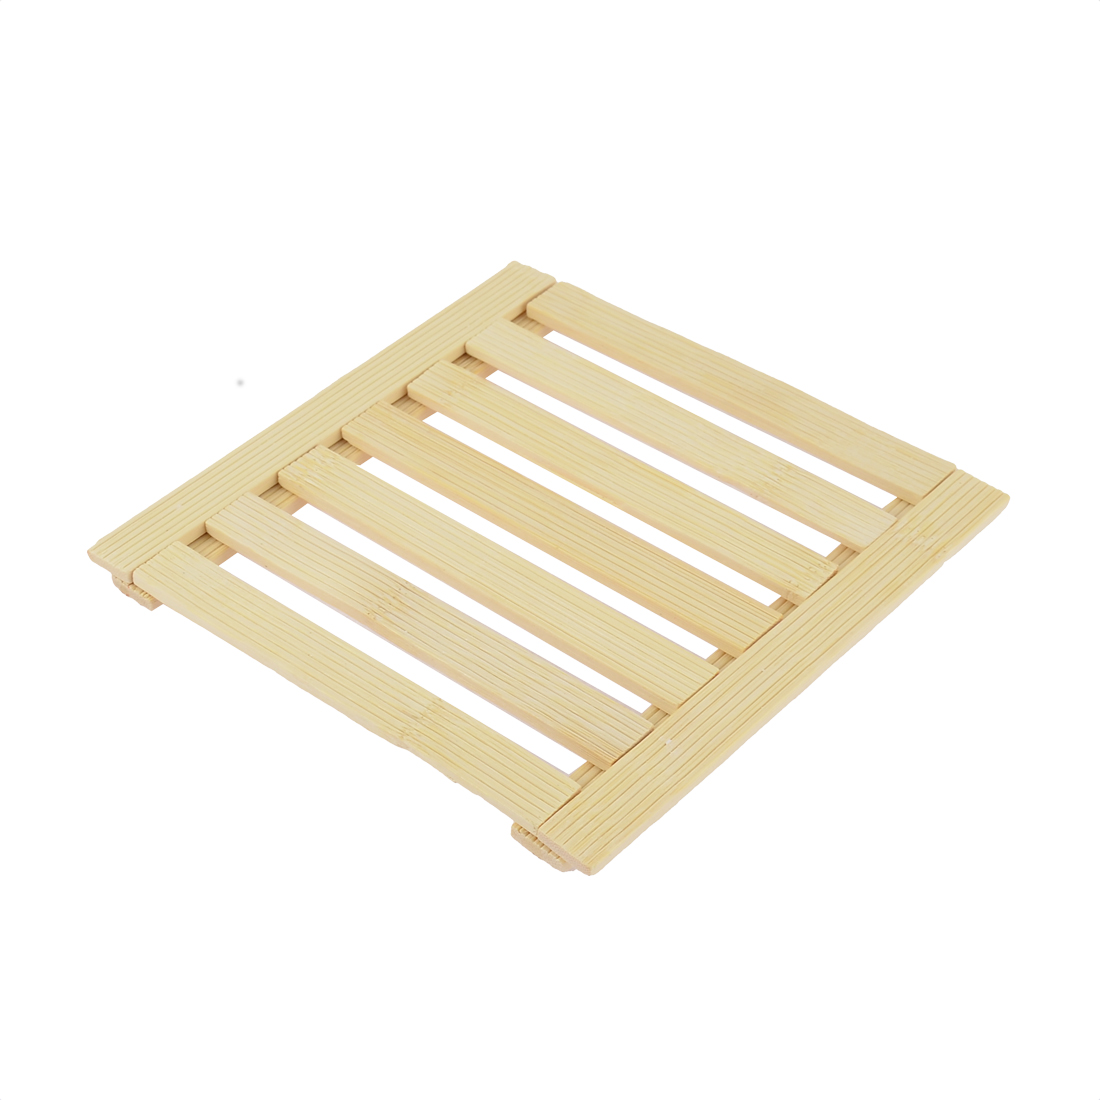 Home Kitchen Table Cup Dishes Bamboo Square Insulation Mat 17 x 17cm